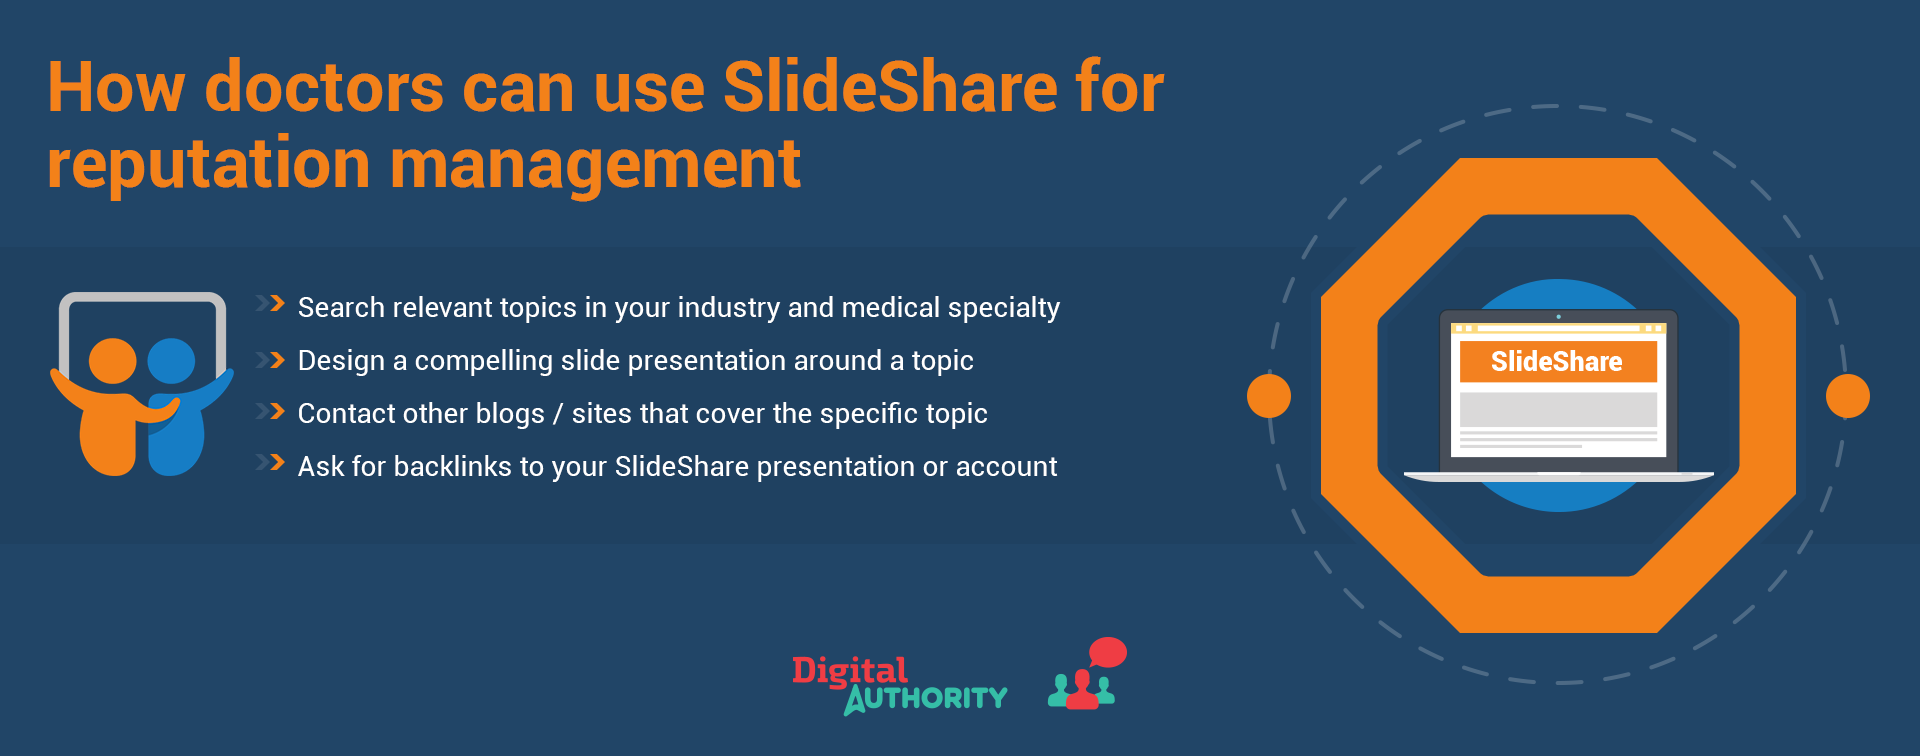 How doctors can use SlideShare for reputation management. 1. Search relevant topics in your industry and medical specialty. 2. Design a compelling slide presentation around a topic. 3. Contact other blogs and websites that cover the specific topic. 4. Ask for backlinks to your SlideShare presentation or account